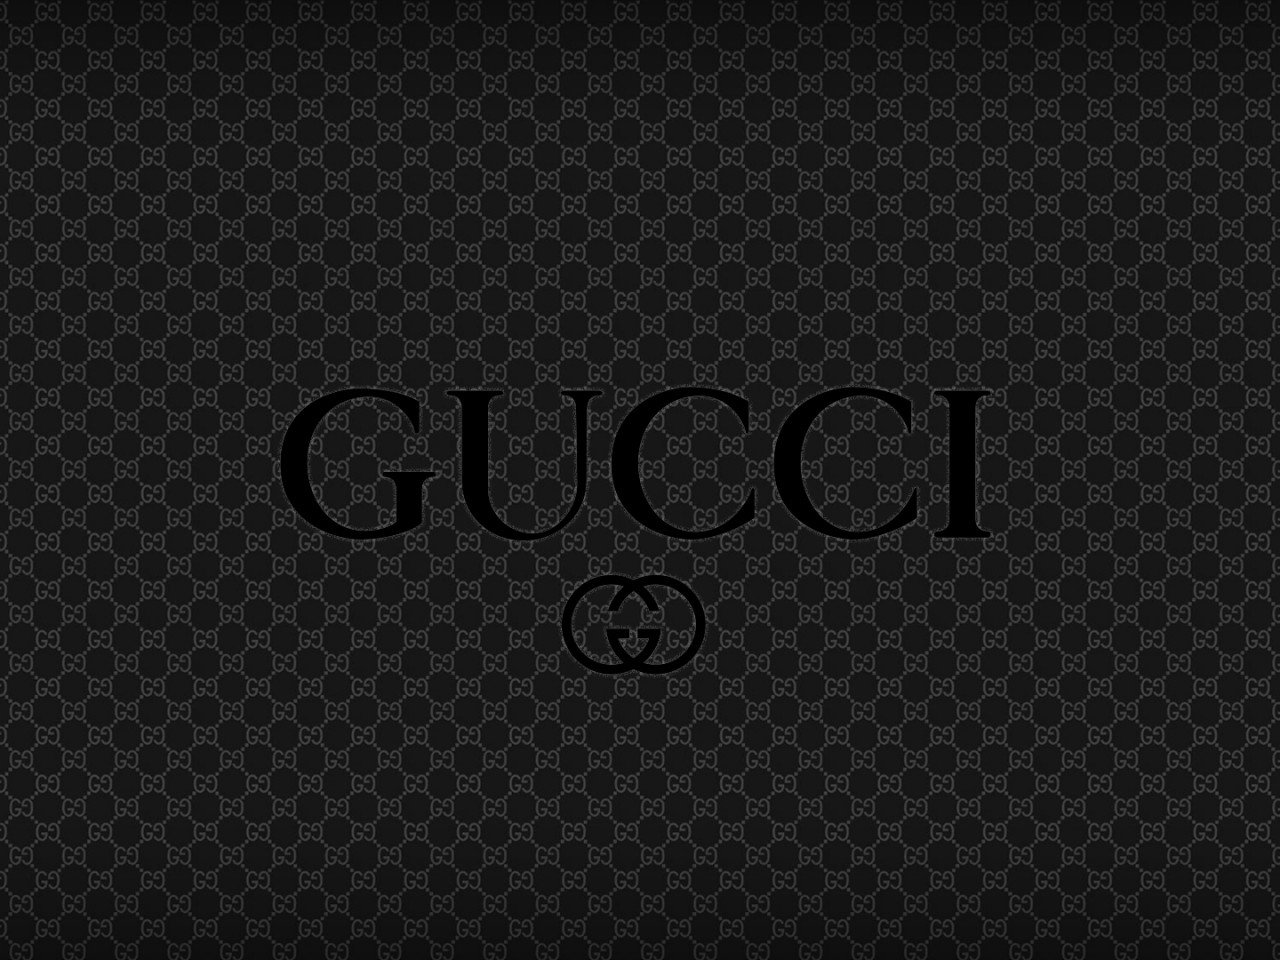 Gucci Wallpaper Logo Wallpaper Download 11522 Wallpaper 1280x960